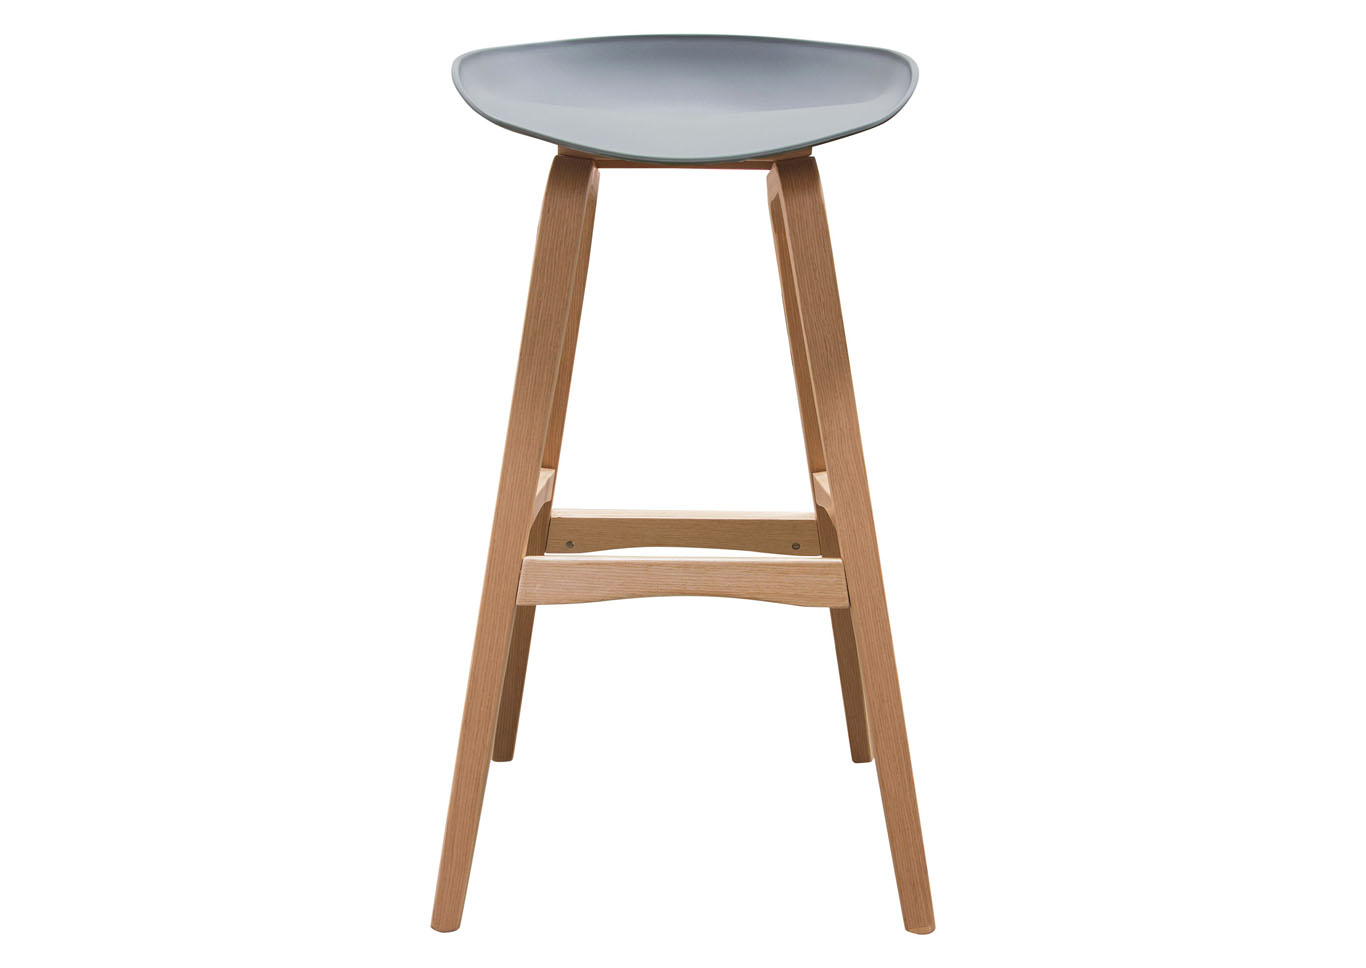 Brentwood Gray Bar Height Stool w/Molded Bamboo Frame,Diamond Sofa